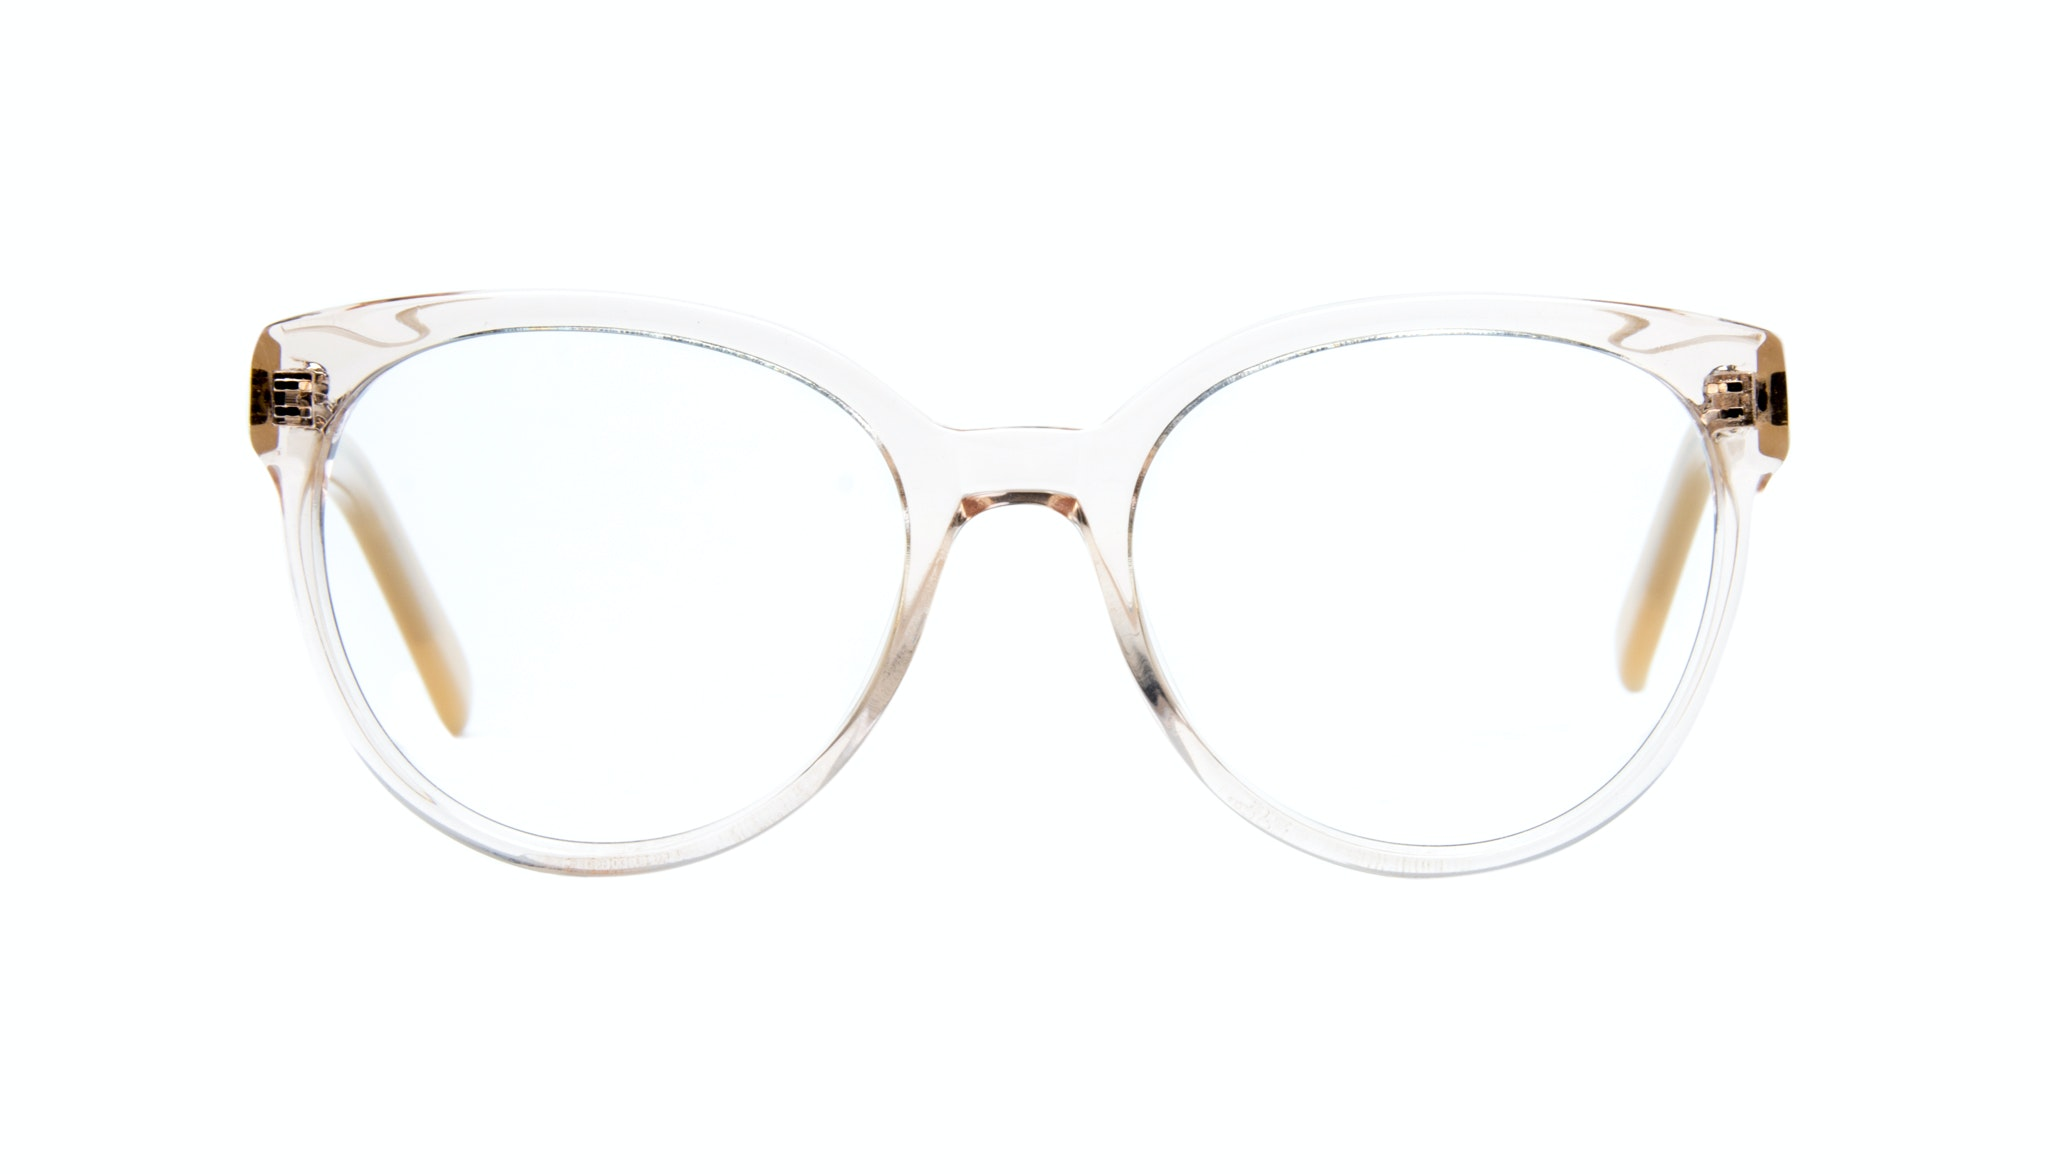 Affordable Fashion Glasses Cat Eye Round Eyeglasses Women Eclipse Blond Metal Front